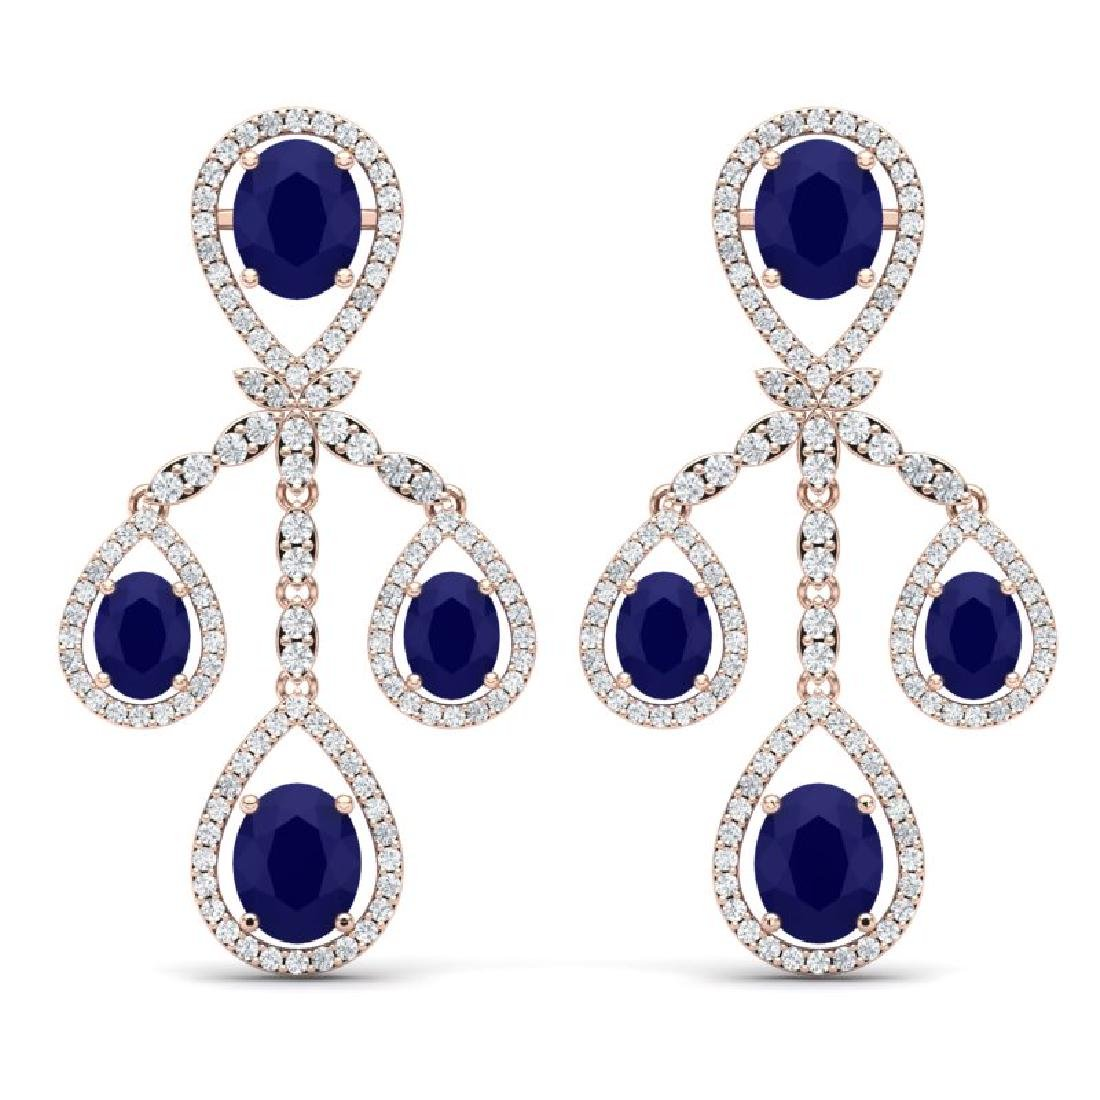 25.08 CTW Royalty Sapphire & VS Diamond Earrings 18K